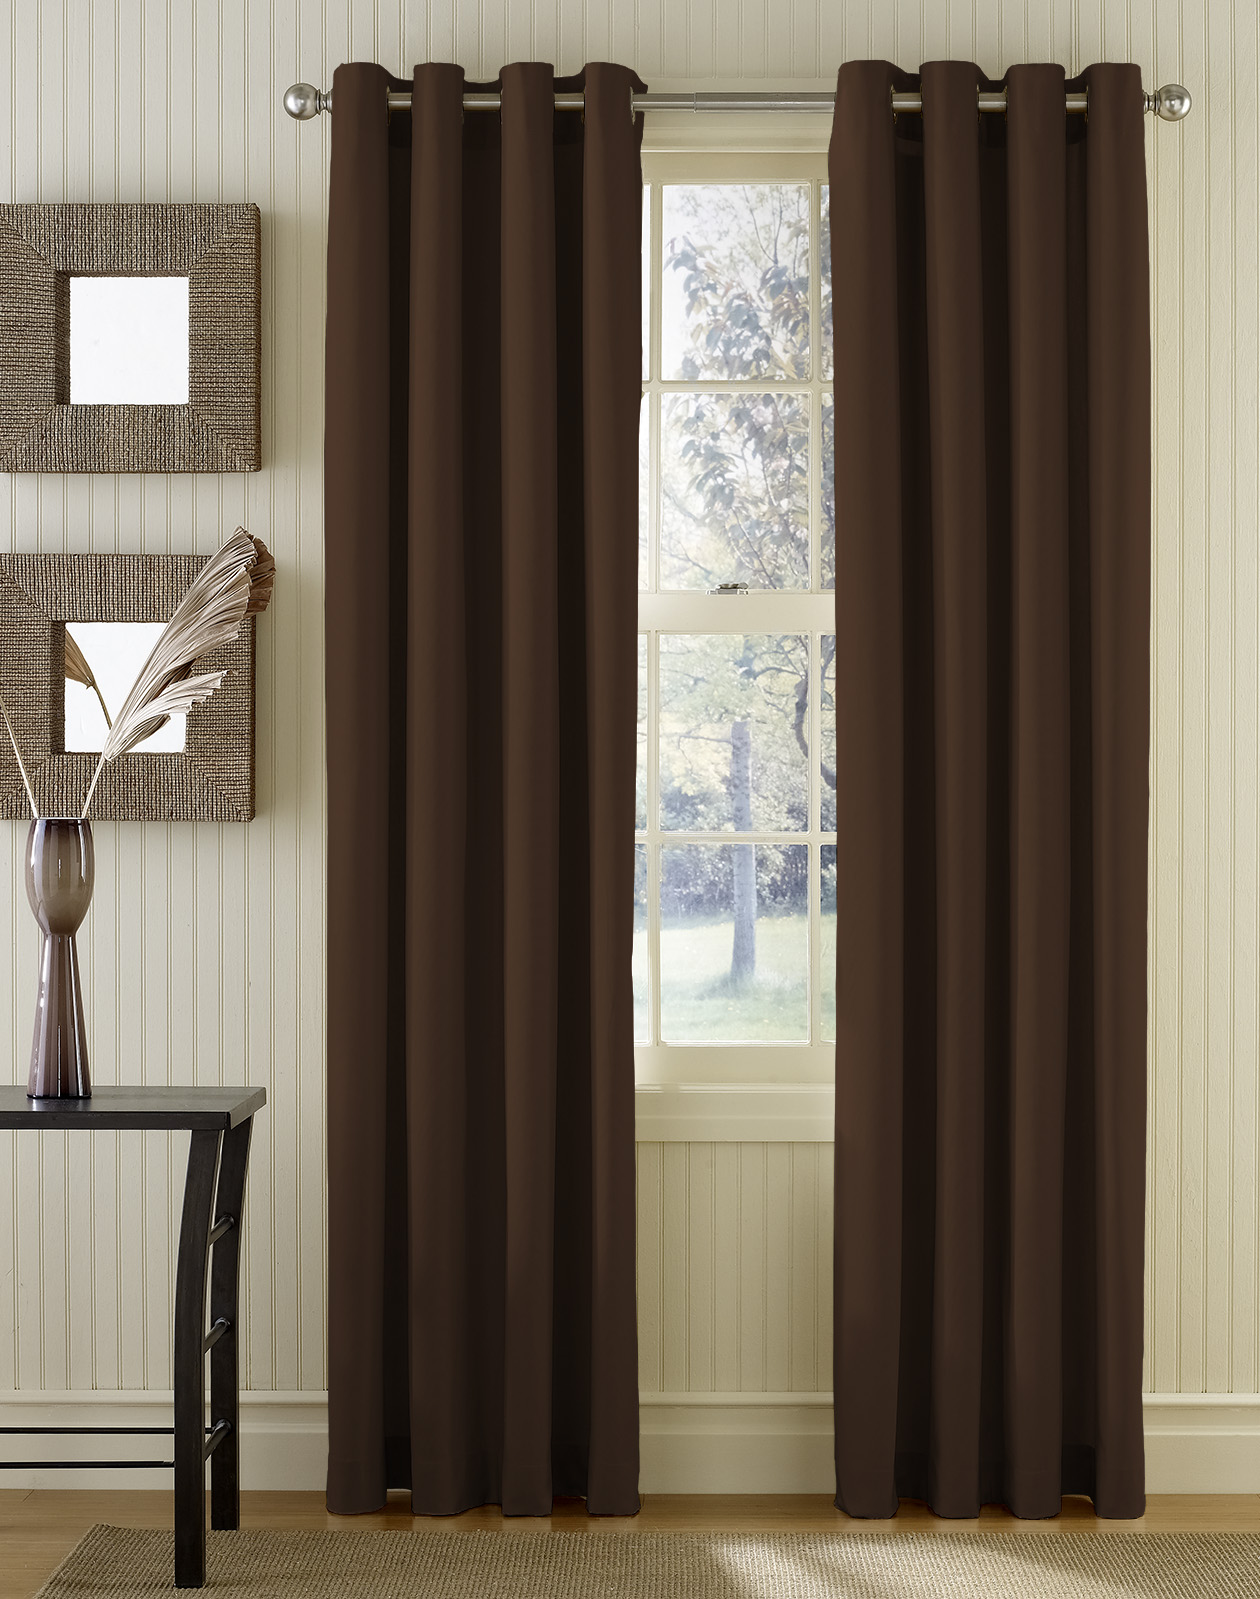 Curtain interior design what is minimalist curtain design